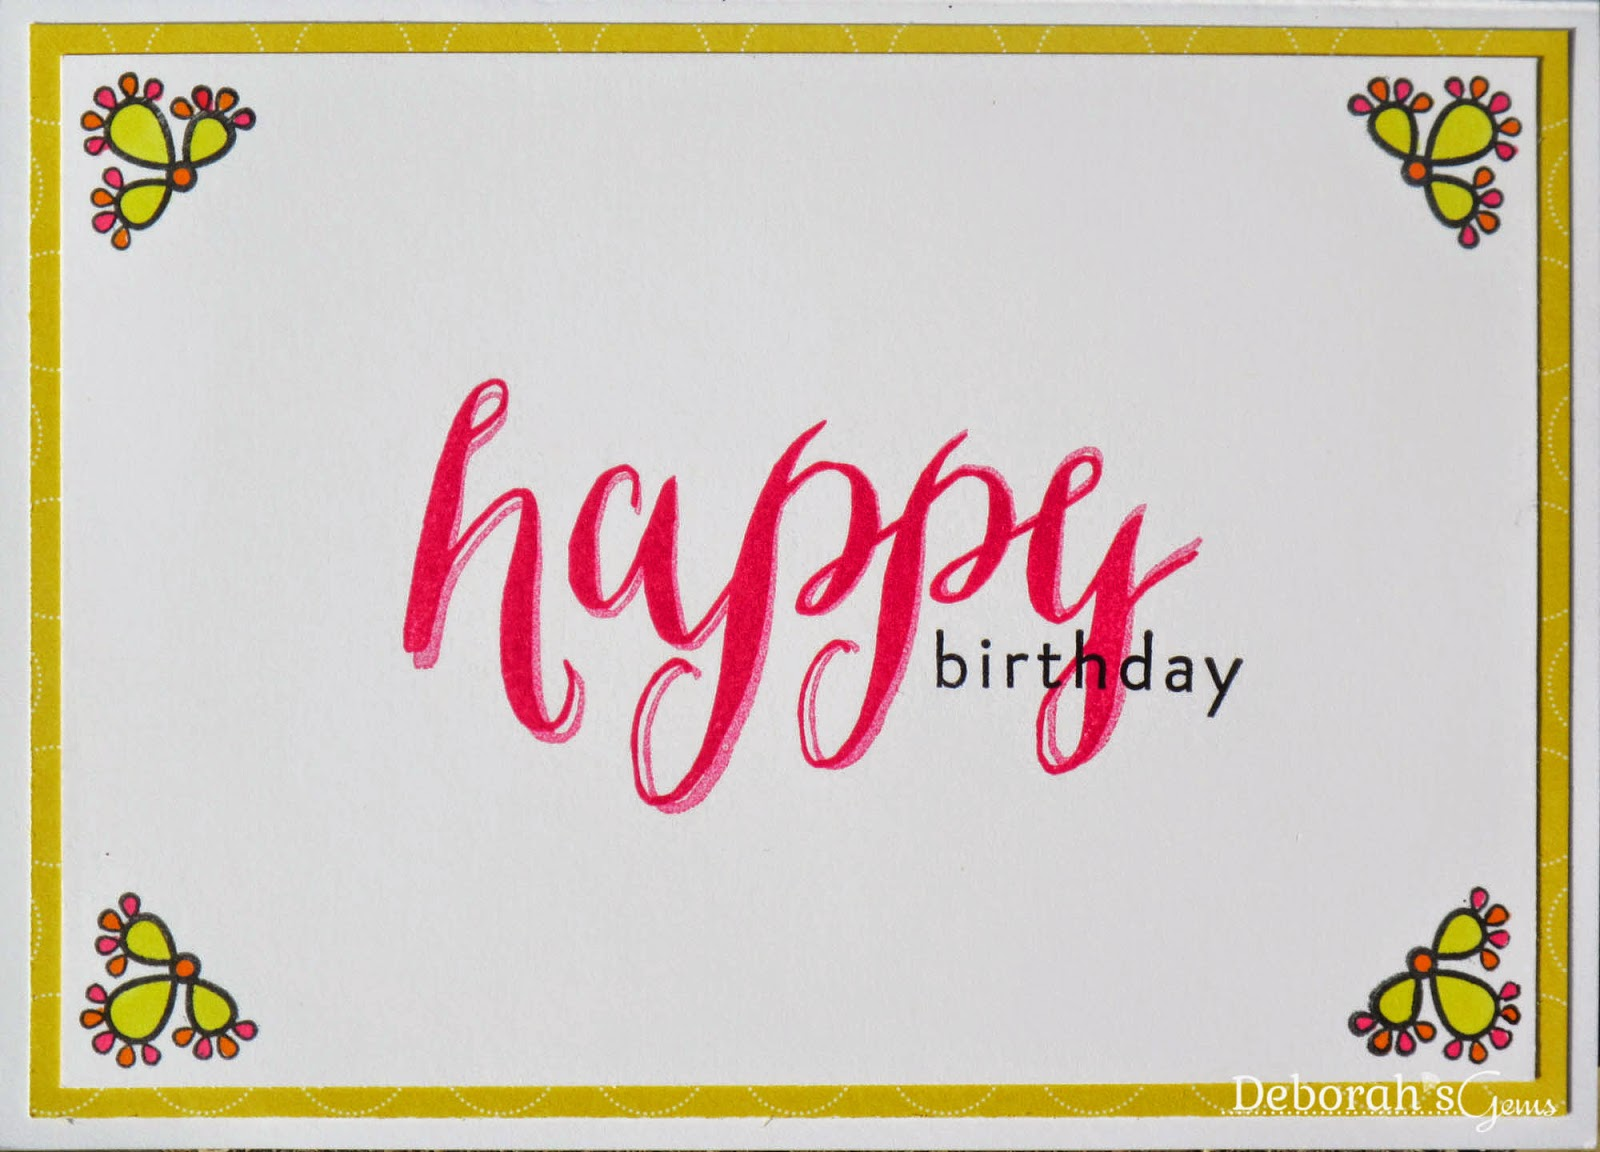 Birthday Wishes inside - photo by Deborah Frings - Deborah's Gems